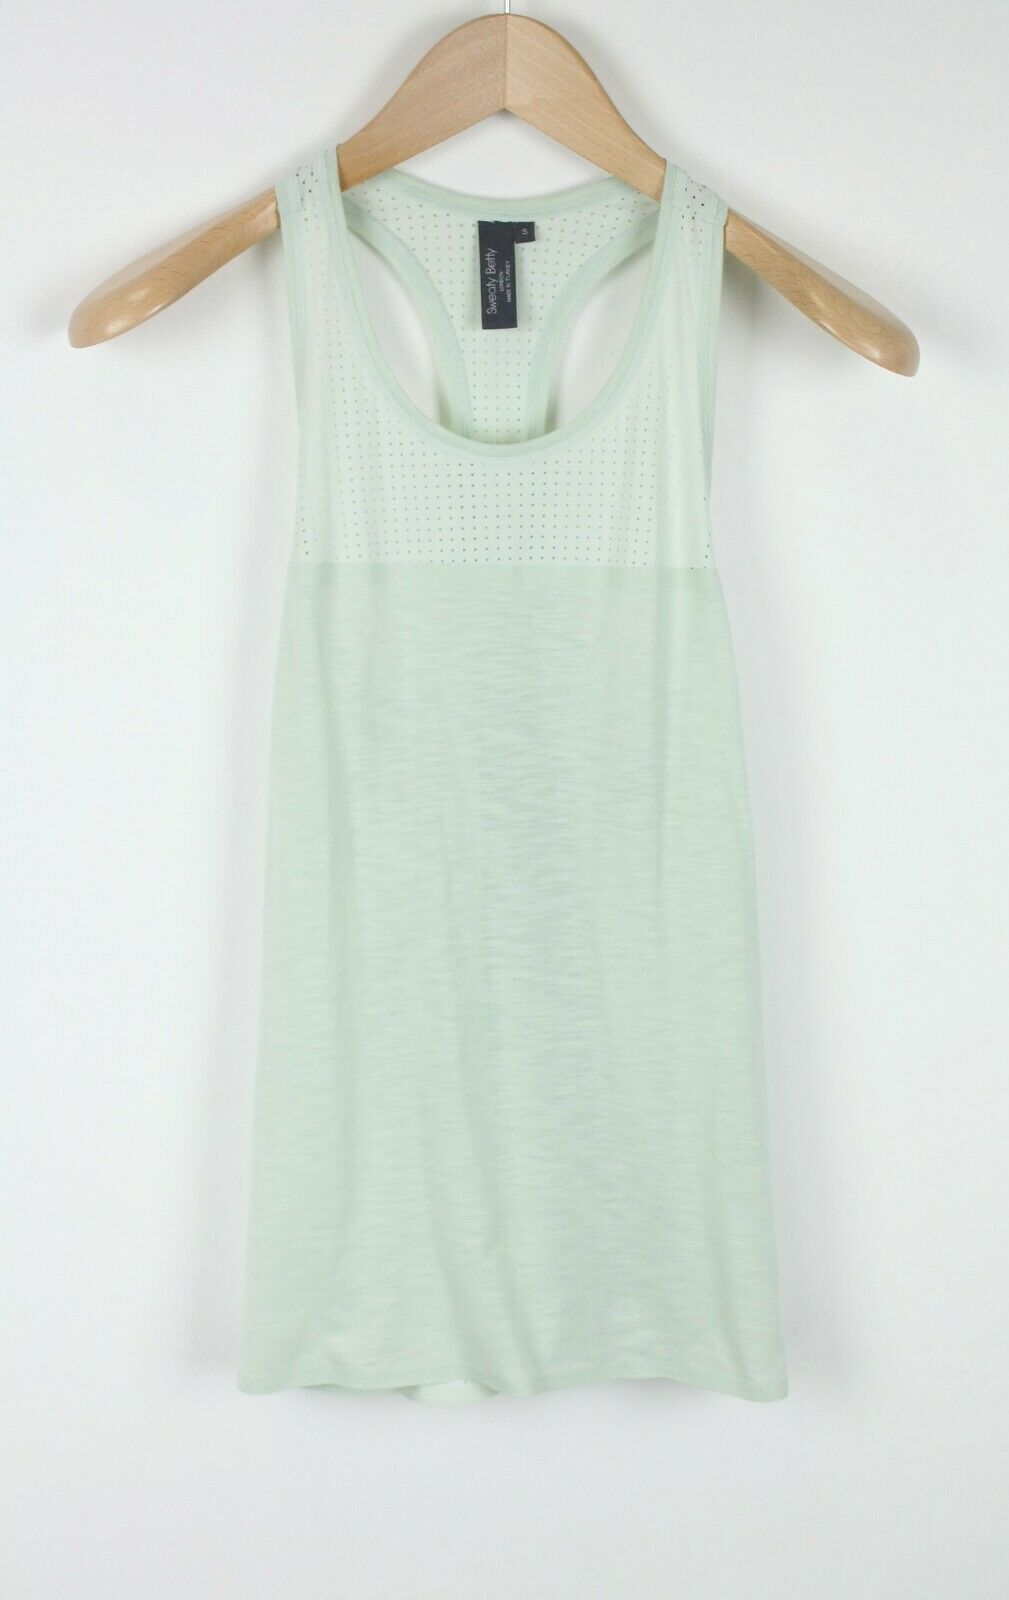 SWEATY BETTY Women SMALL Perforated Racer Back Sleeveless Workout Top 18613*